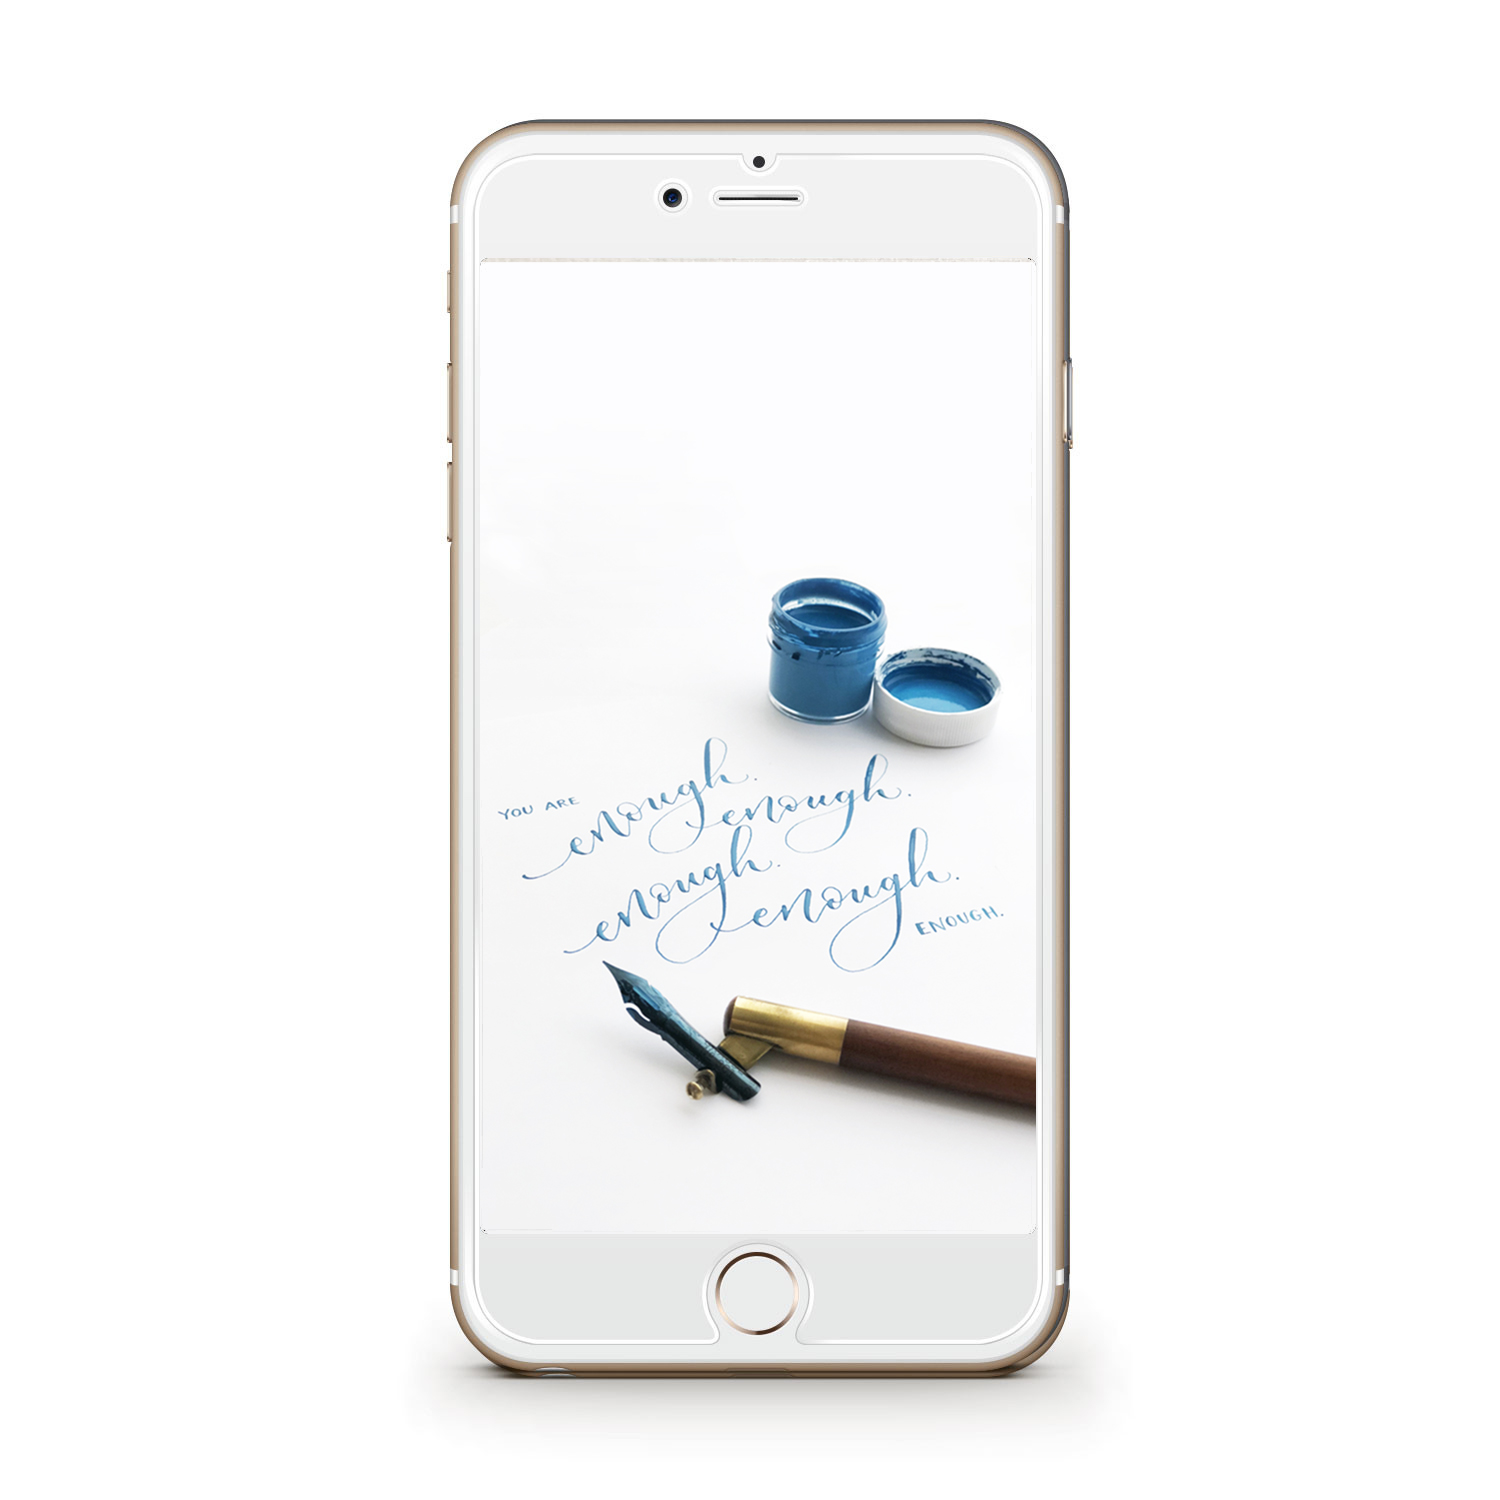 You-are-Enough-(IPHONE).jpg